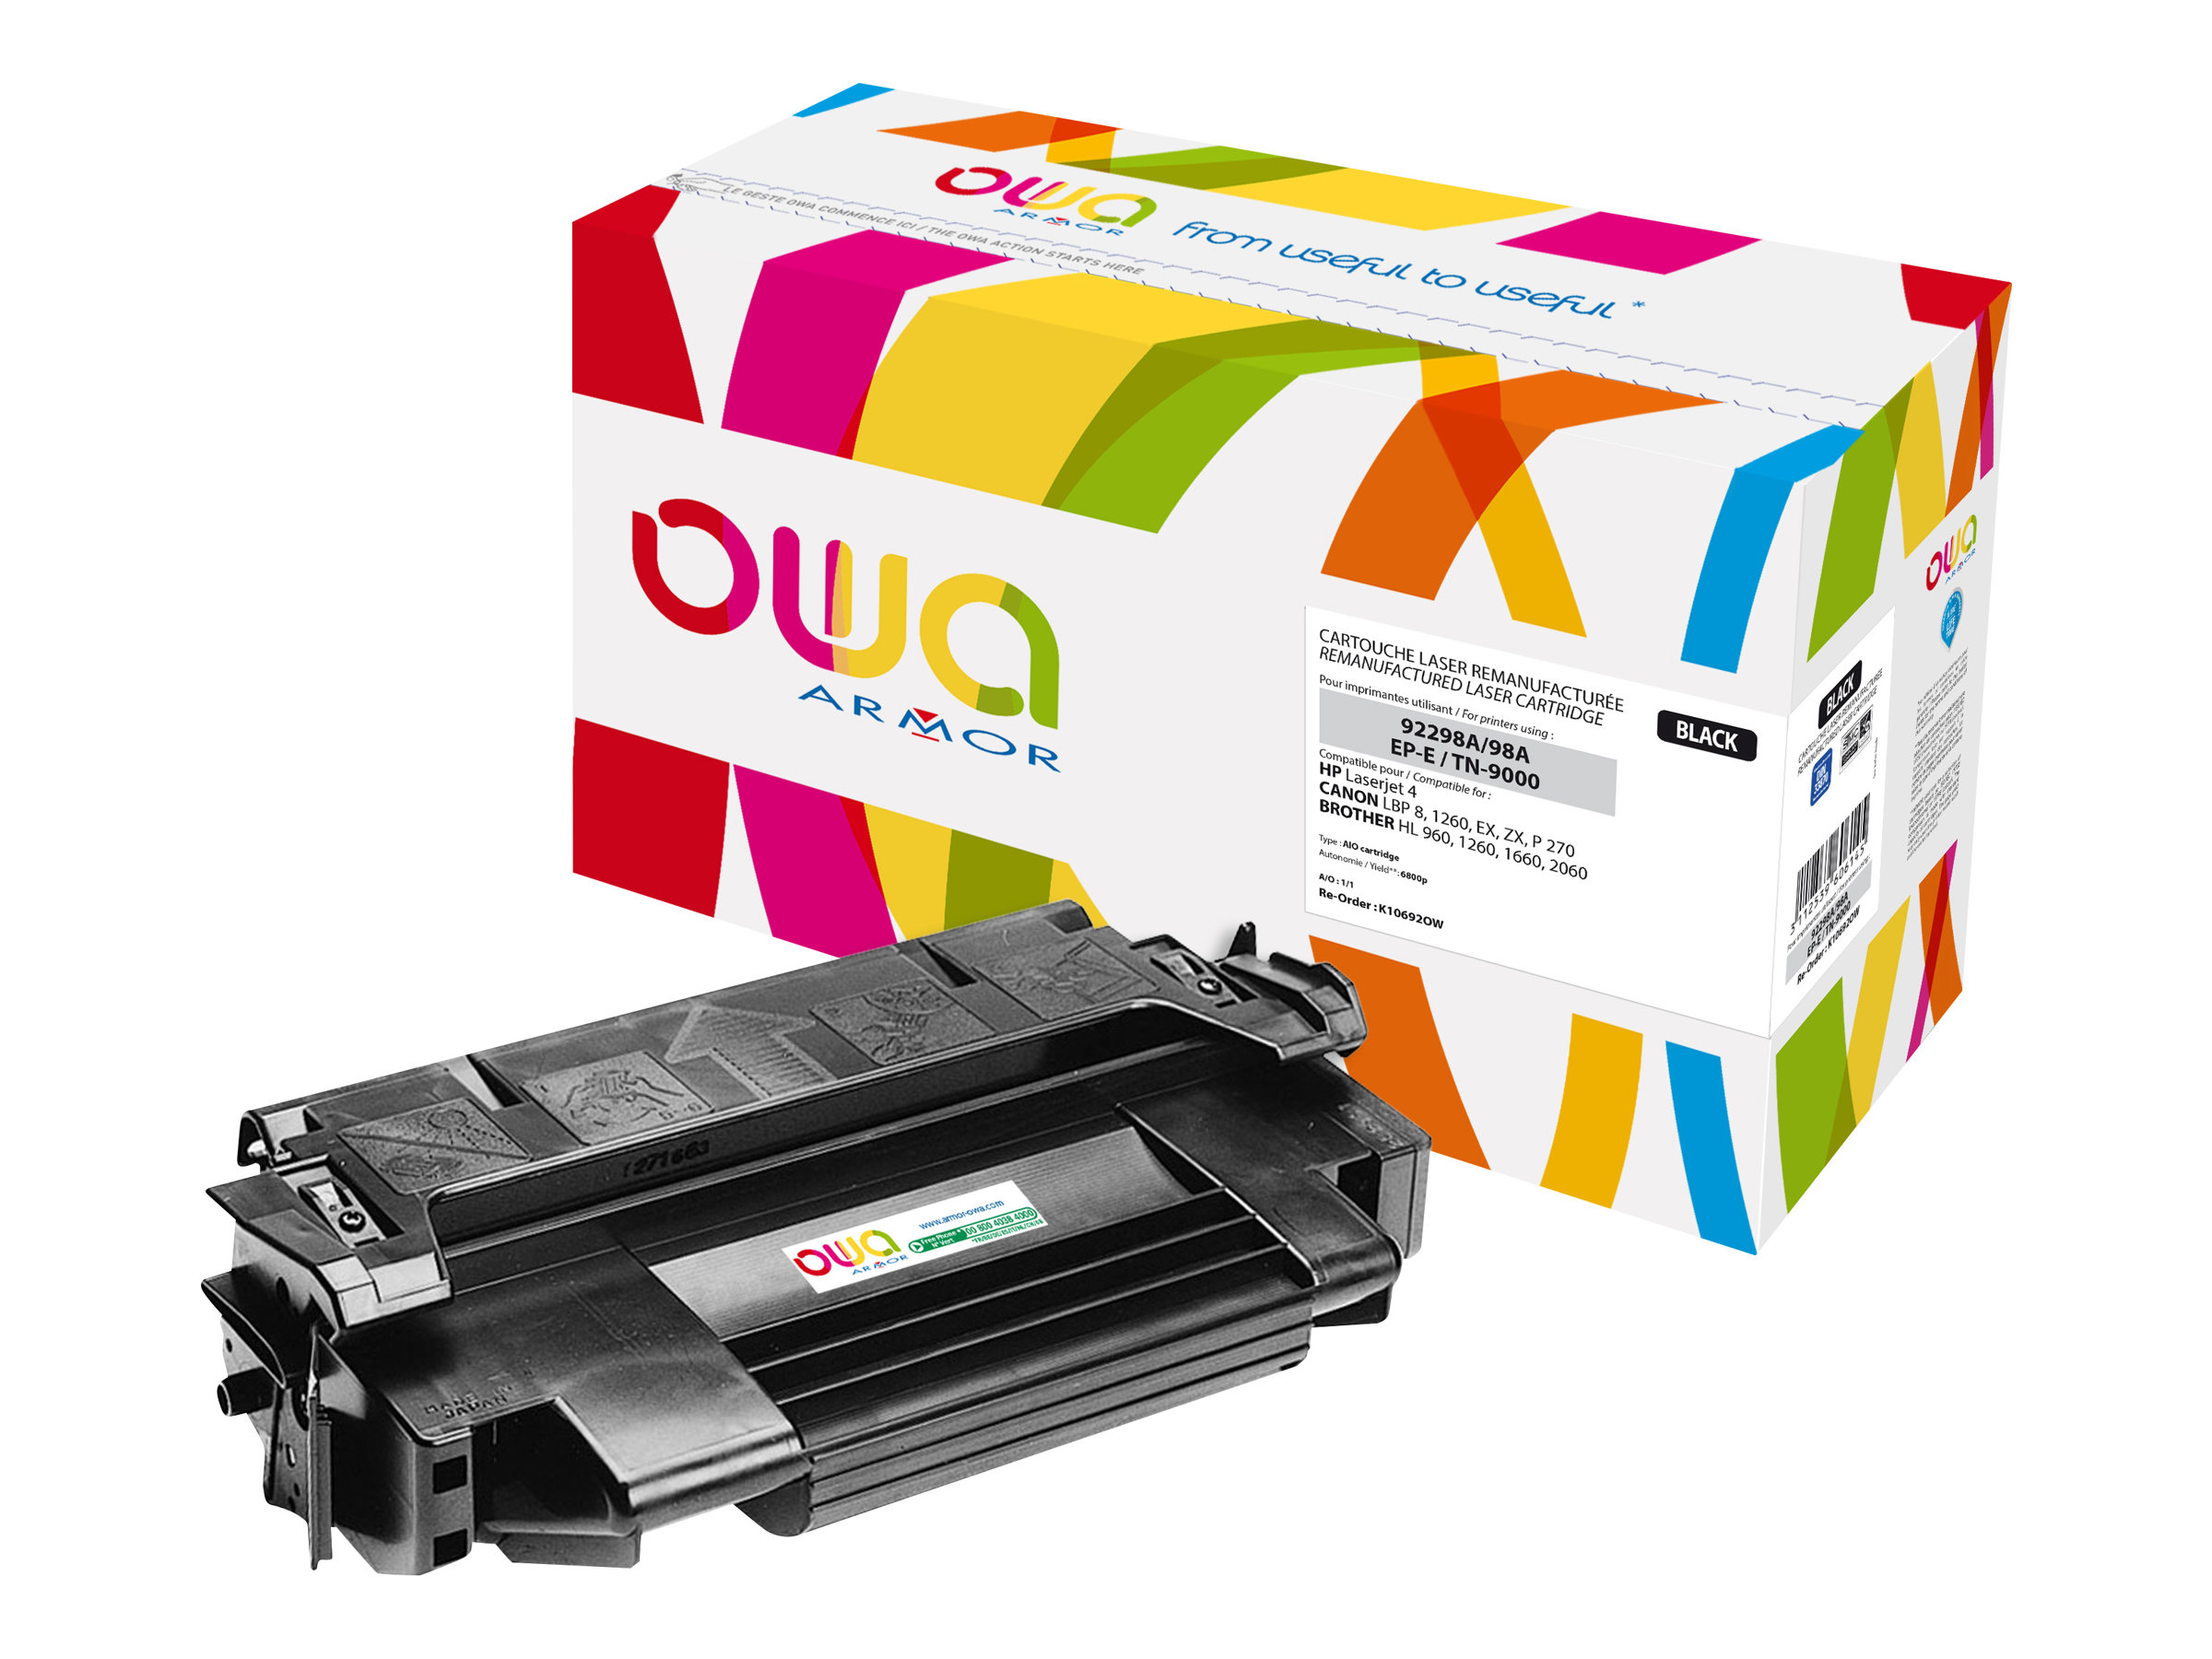 HP 92298A, Canon EP-E, Brother TN9000 - remanufacturé OWA K10692OW - noir - cartouche laser